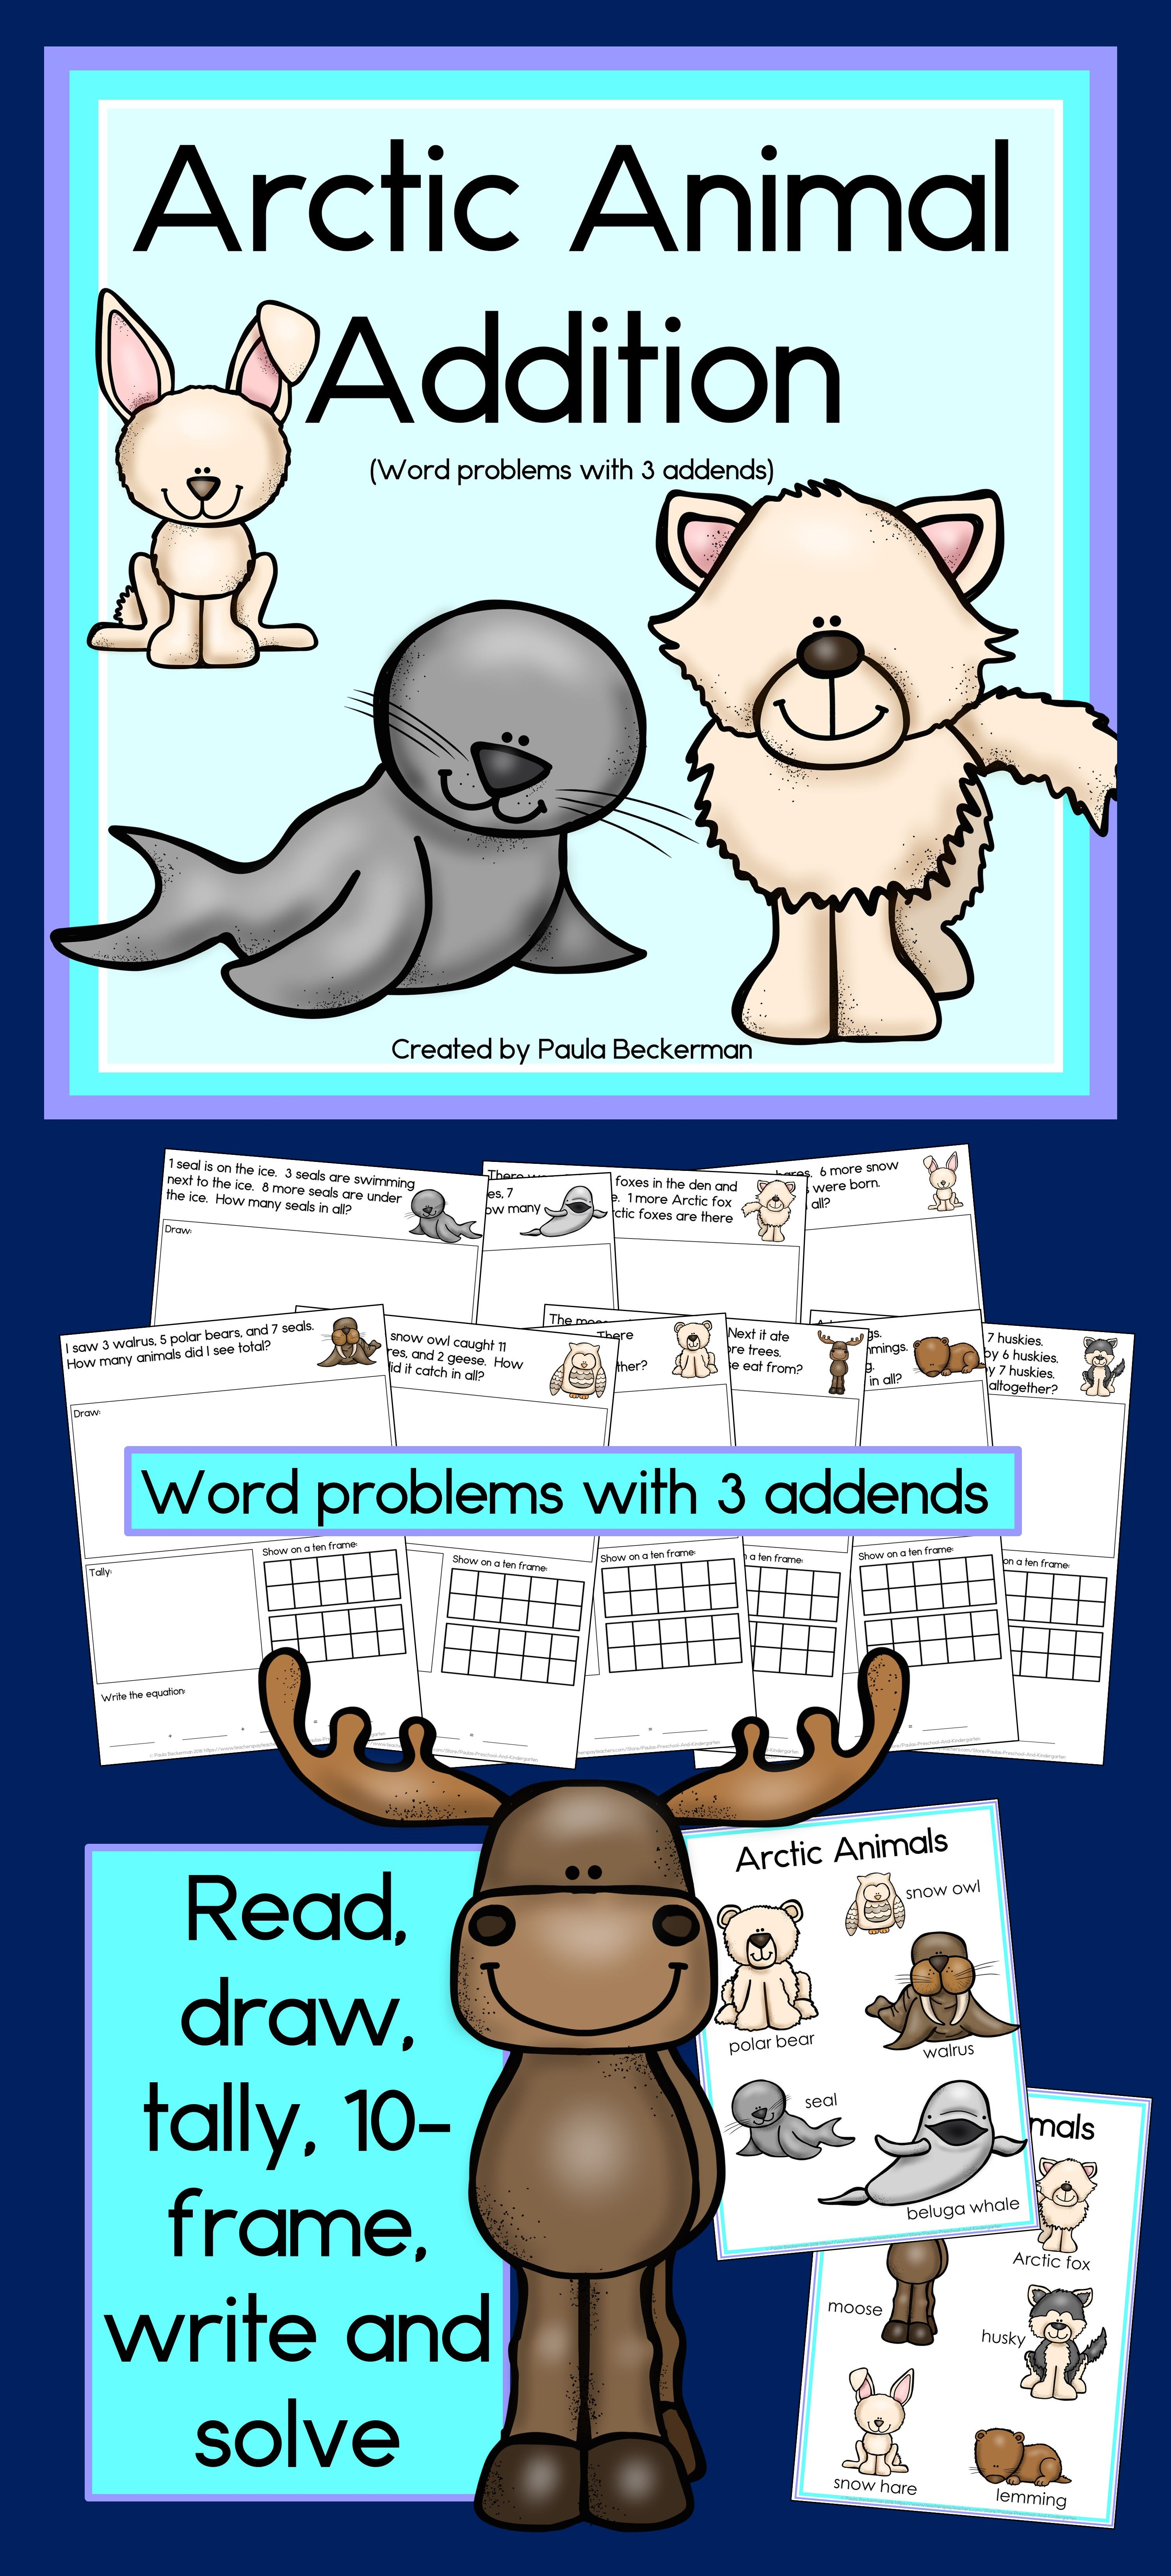 Funky Which Arctic Animals Love Math Worksheet Answers Elaboration ...